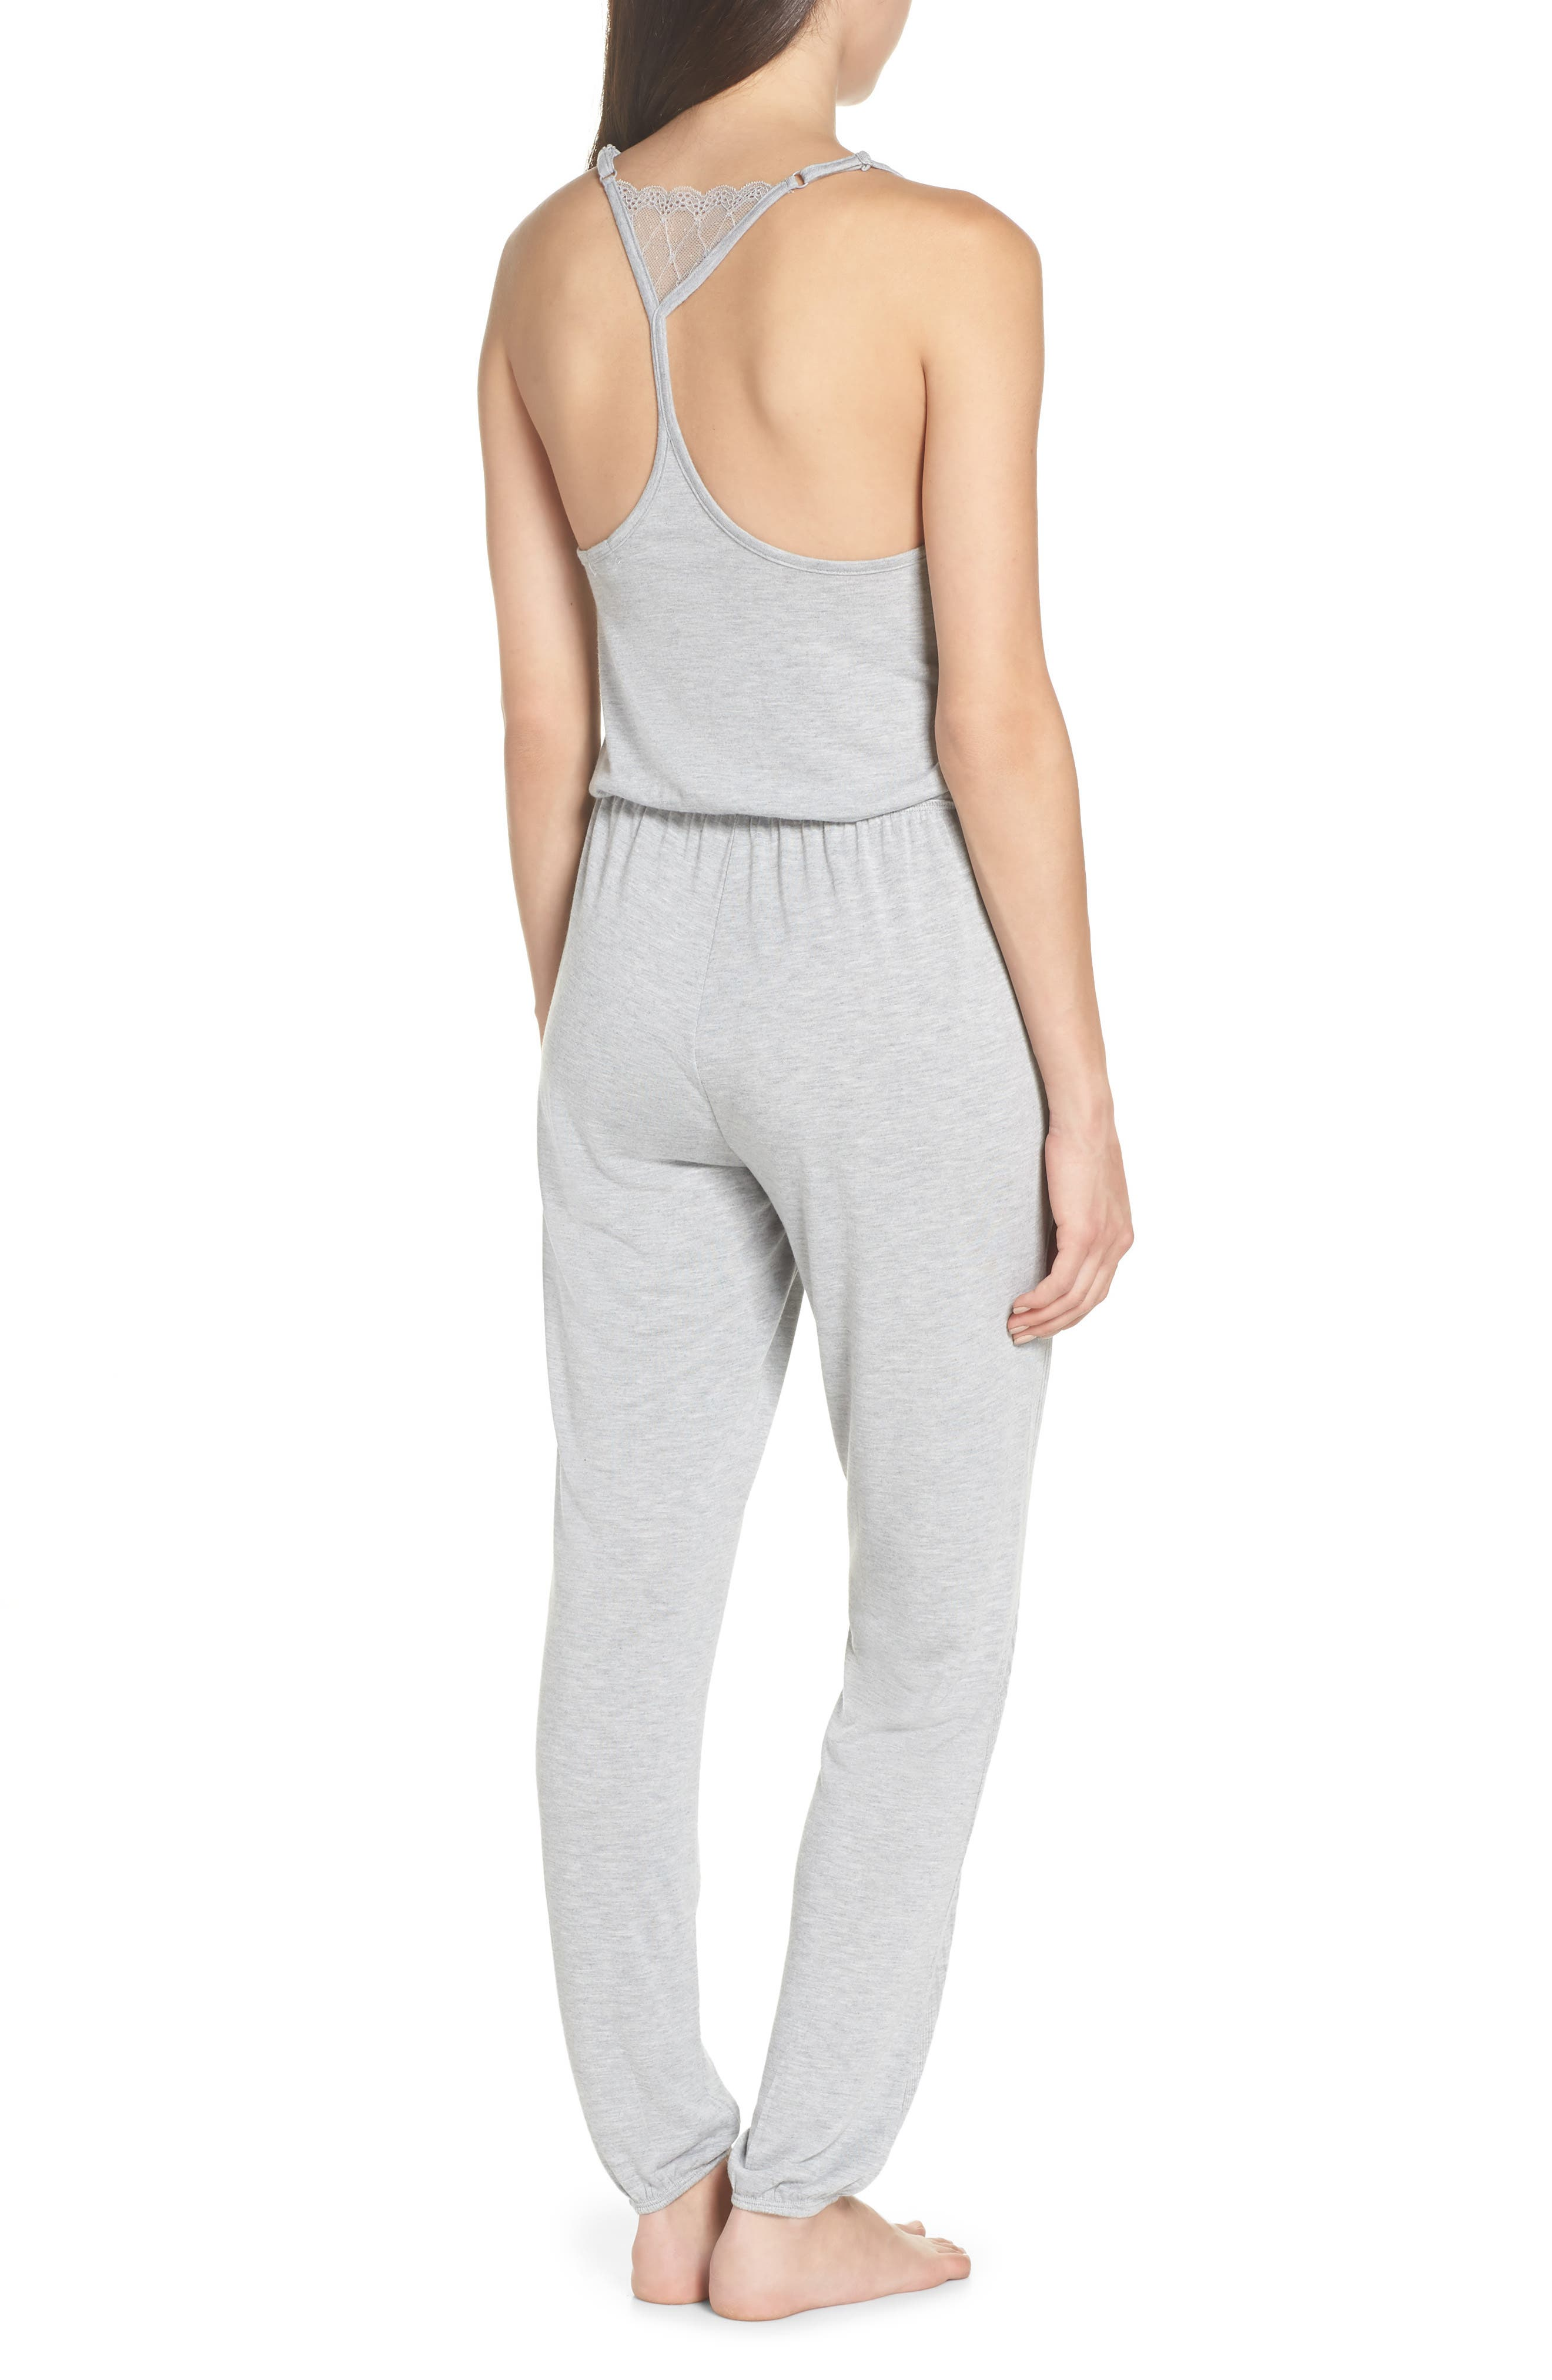 Romper Pajamas,                             Alternate thumbnail 2, color,                             Light Heather Grey